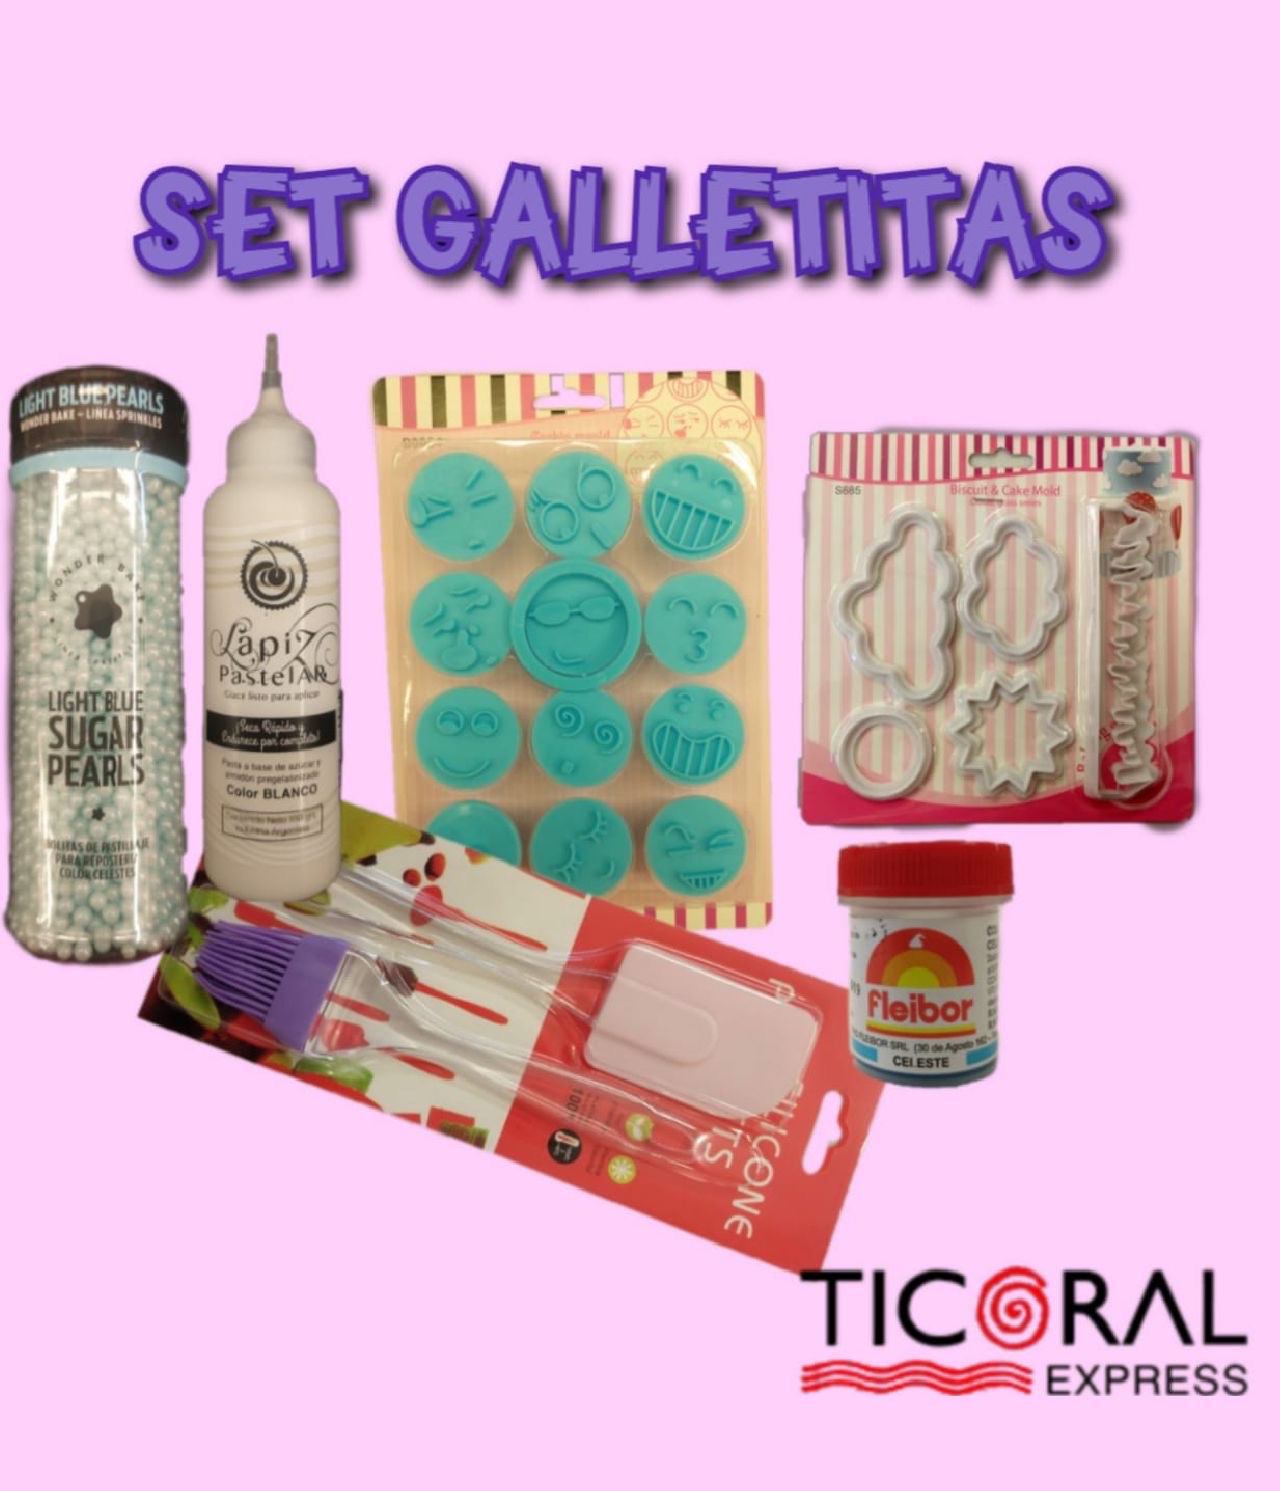 SET GALLETITAS